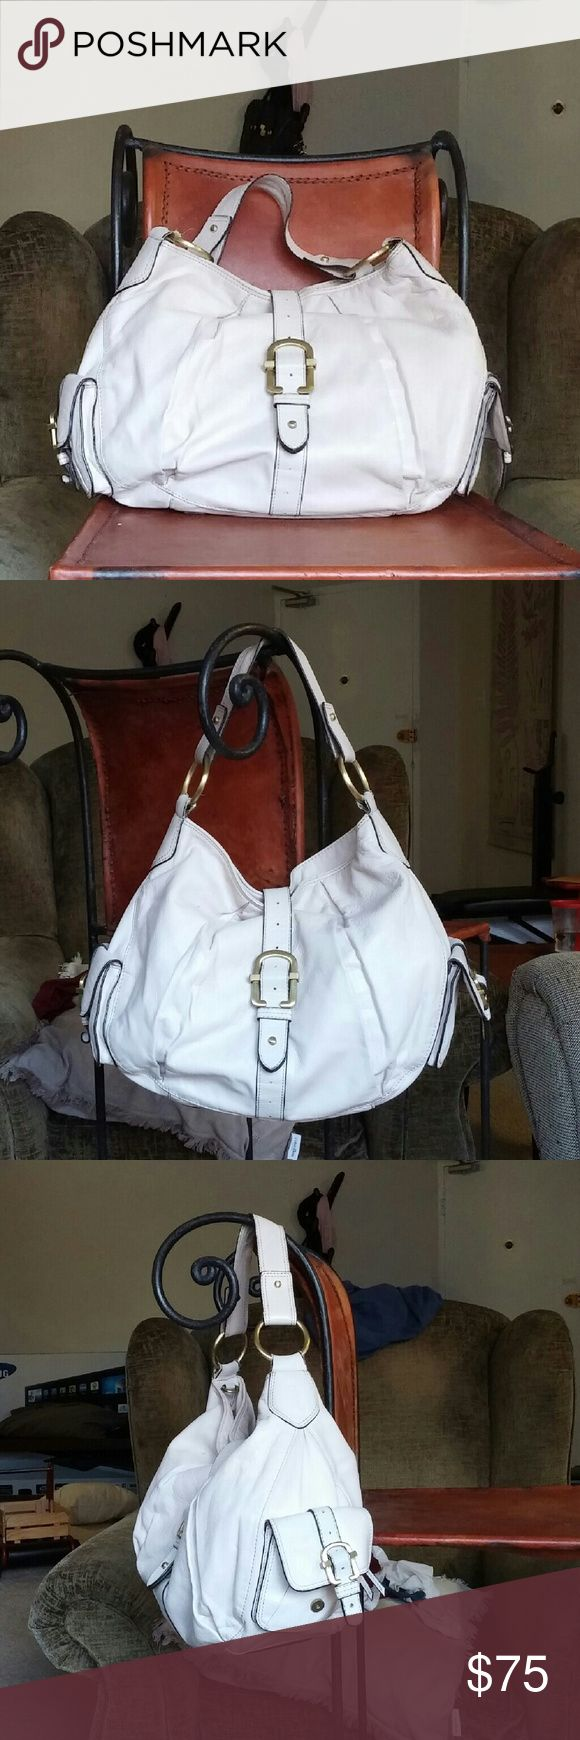 Brio! One of my most favorite bags. Soft leather, 4 large, deep pockets inside the bag. It's a ecru white, so it can be worn all year round. It's sturdy and tough, and can hold a lot. In used condition. Very comfortable tp wear. Comes from smoke free home. Brio! Bags Hobos